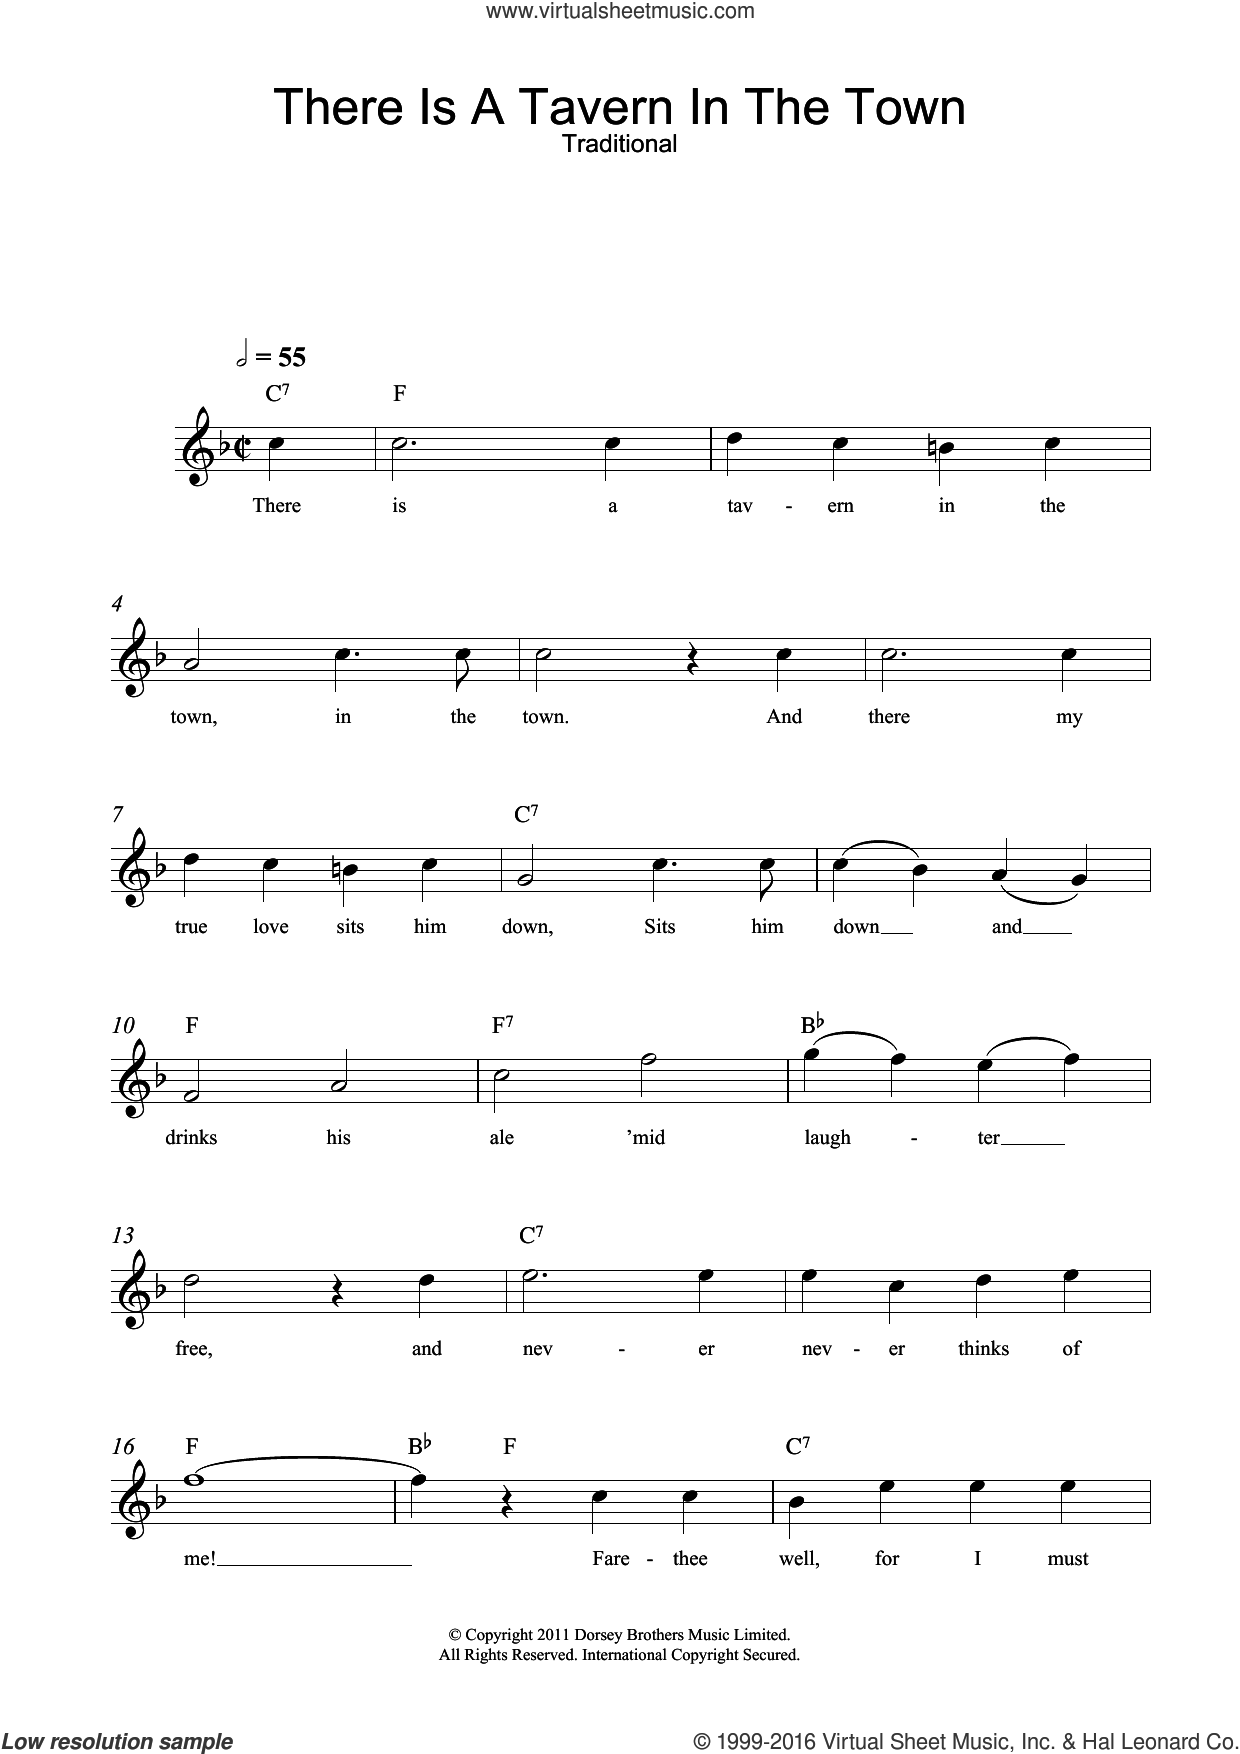 There Is A Tavern In The Town sheet music for voice and other instruments (fake book), intermediate skill level